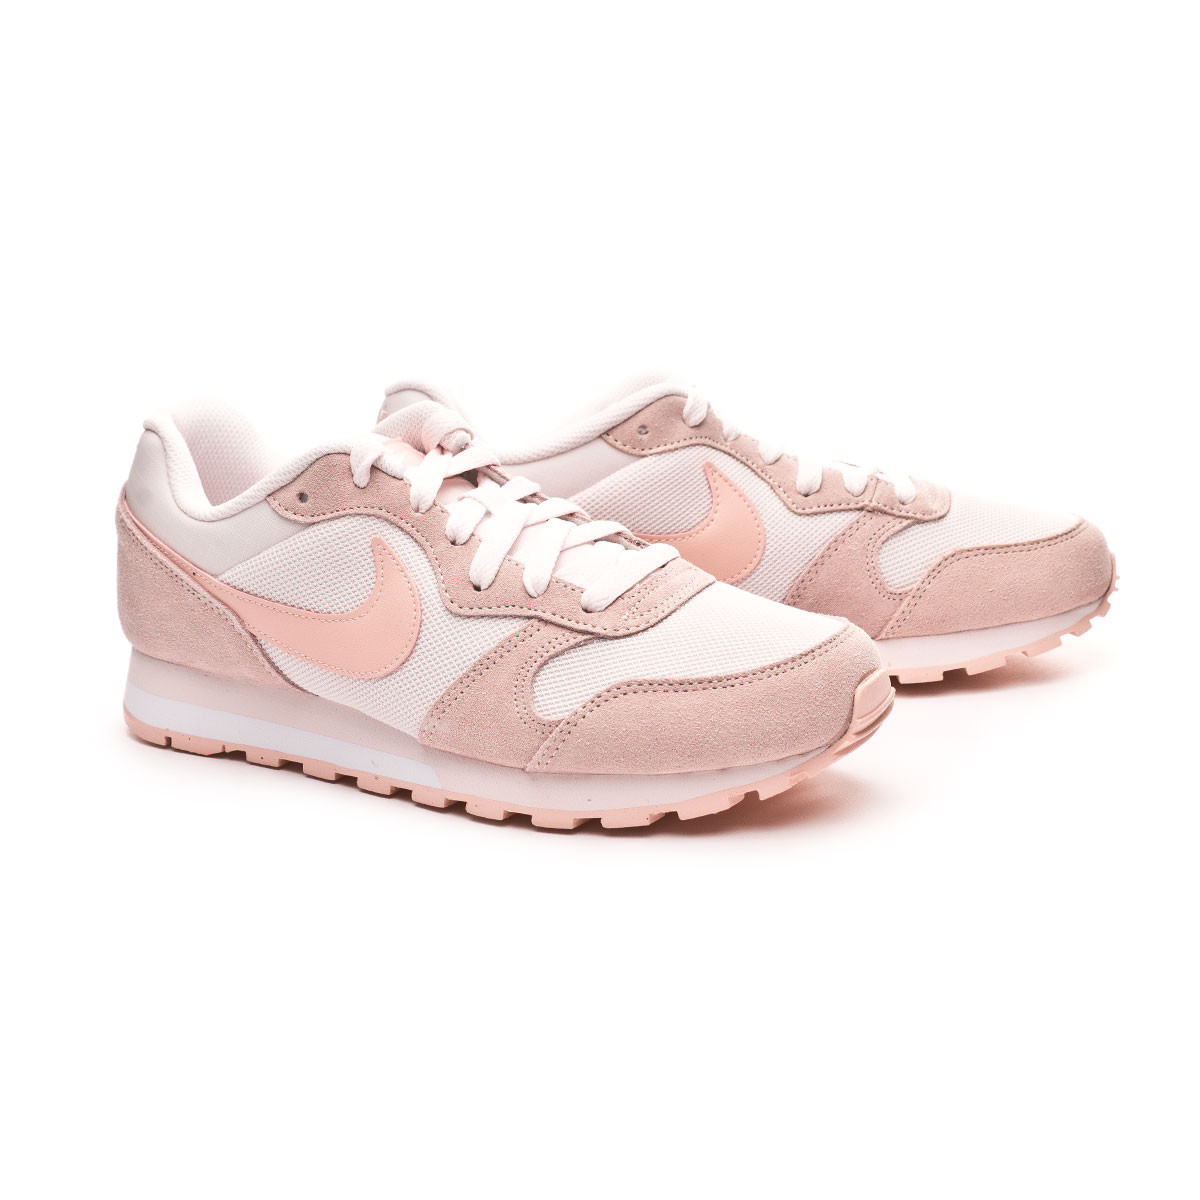 Nike MD Runner 2 Mujer Trainers